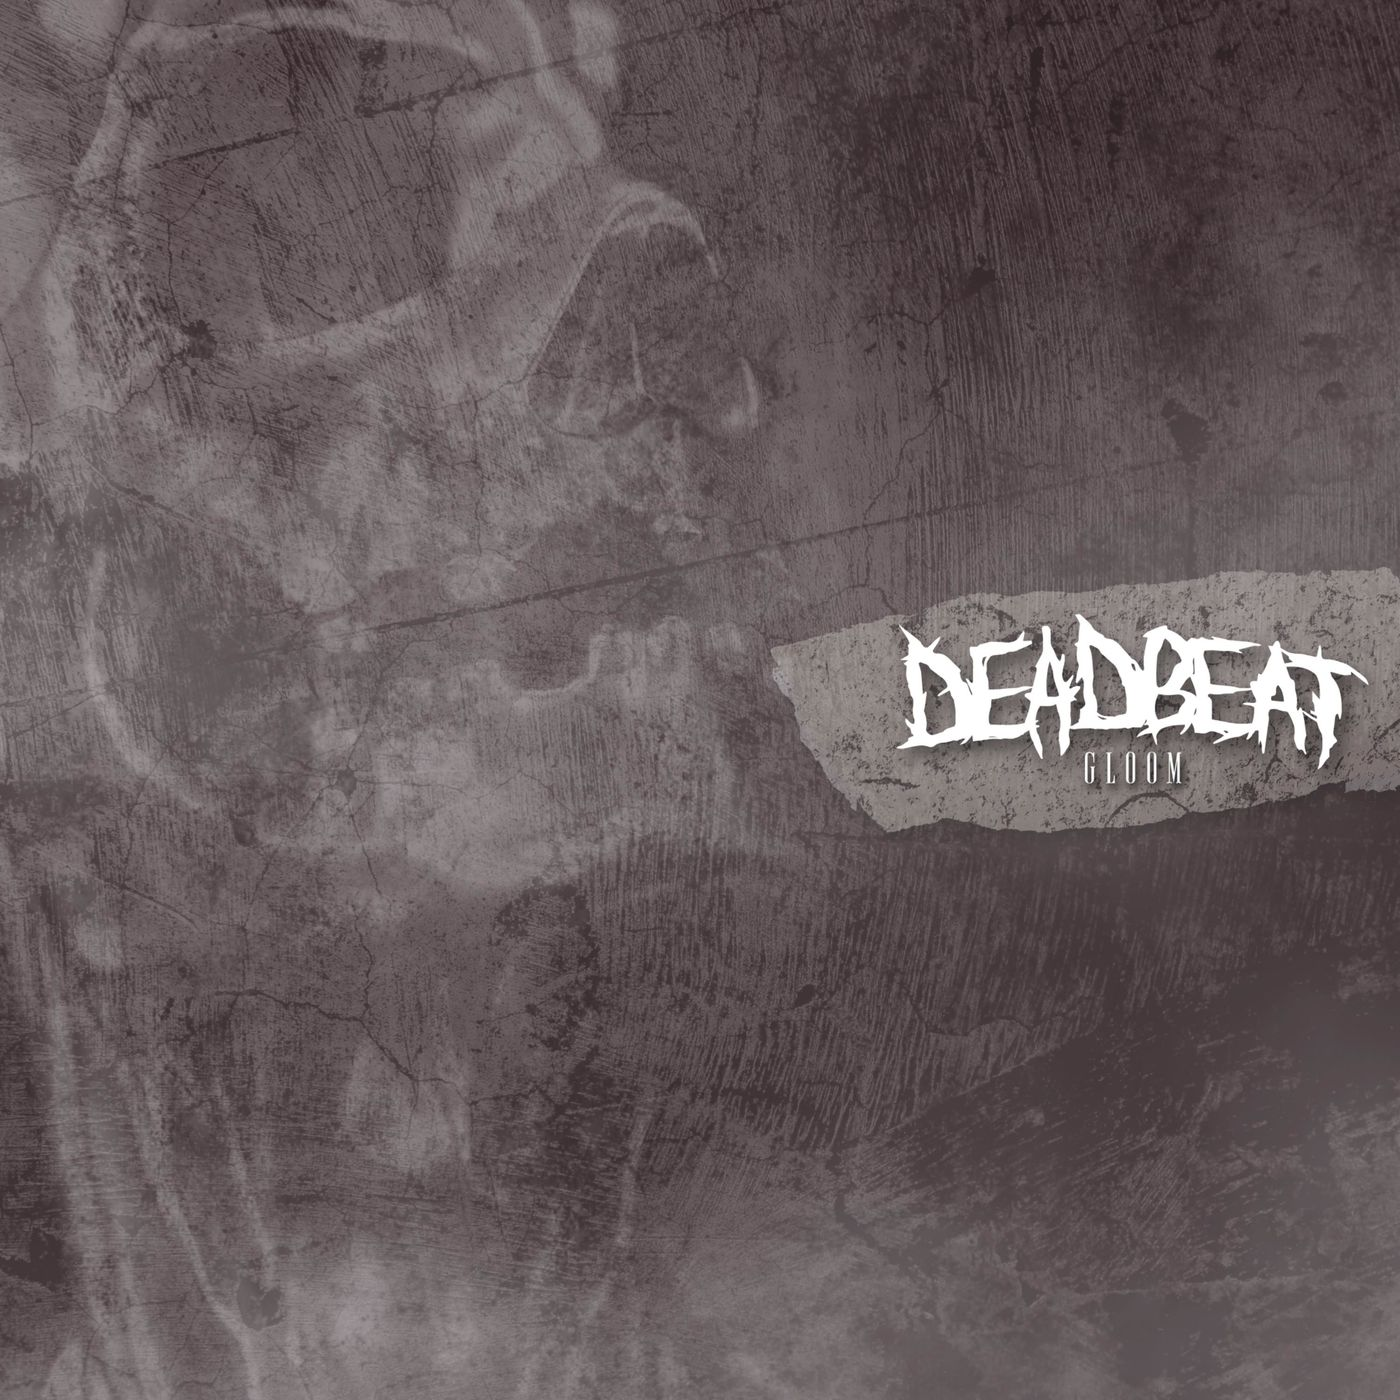 DEADBEAT - Gloom [EP] (2020)